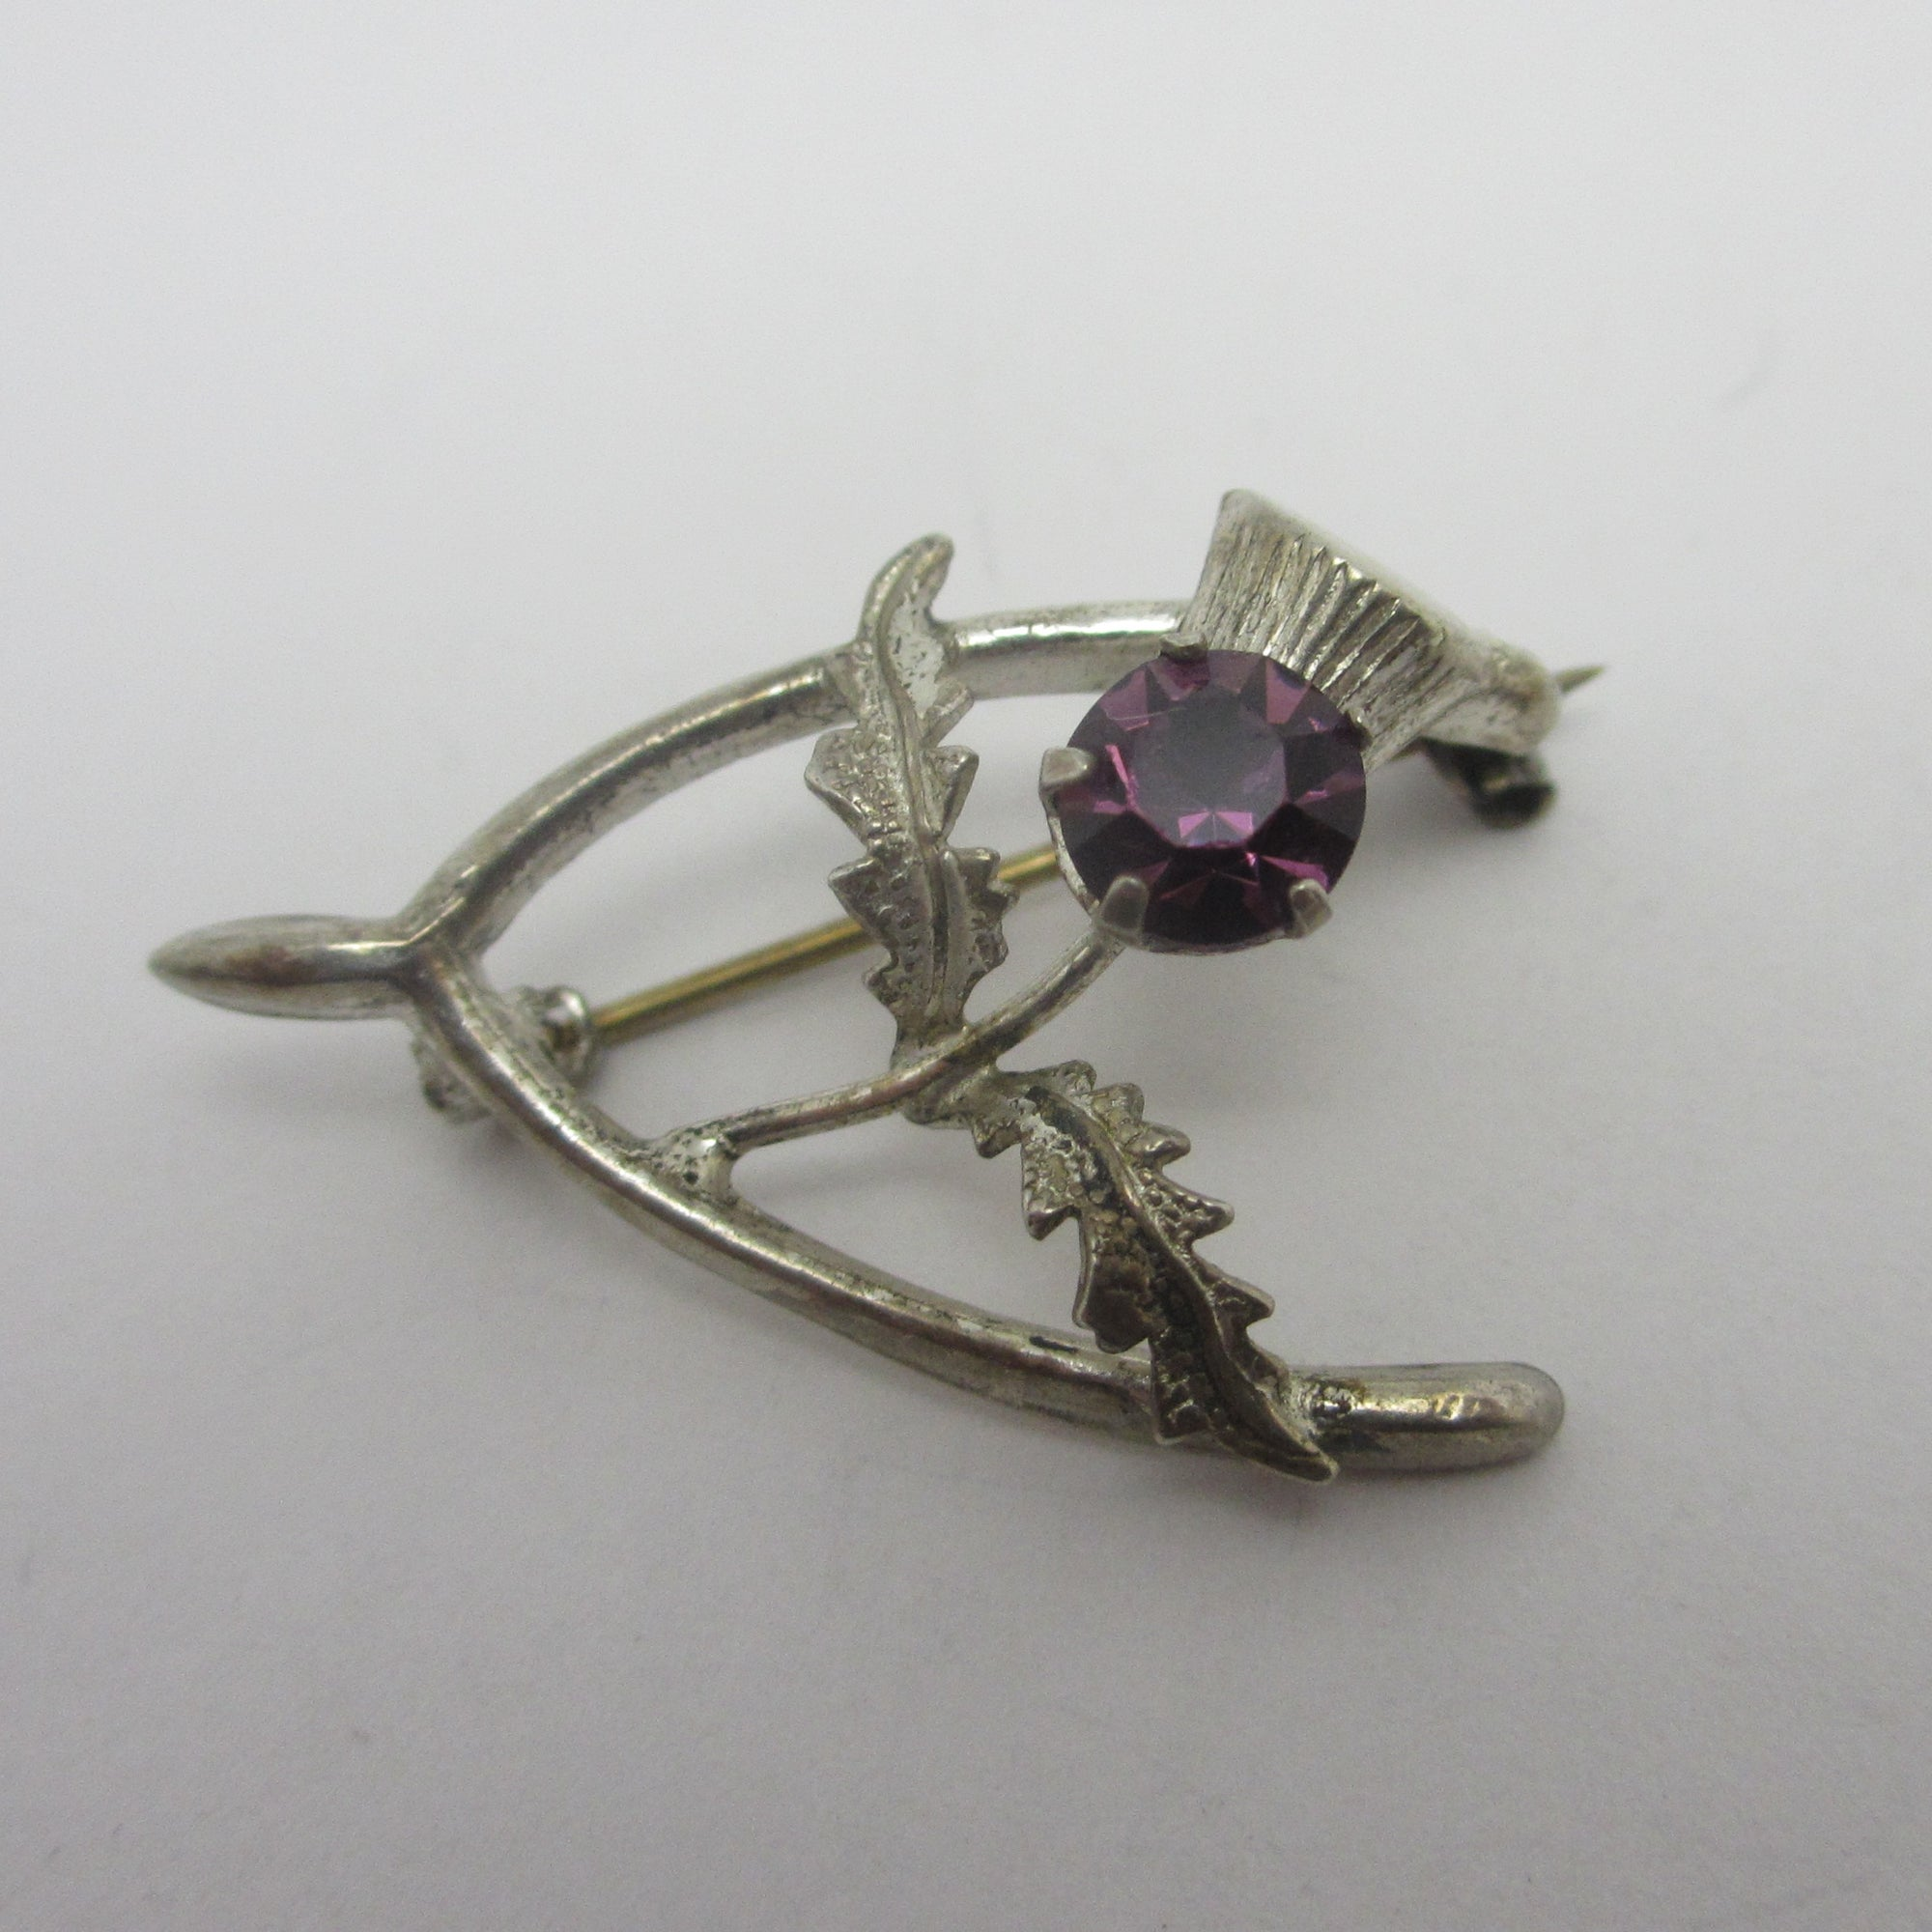 Scottish Thistle Lucky Wishbone Sterling Silver Brooch Pin Vintage c1950